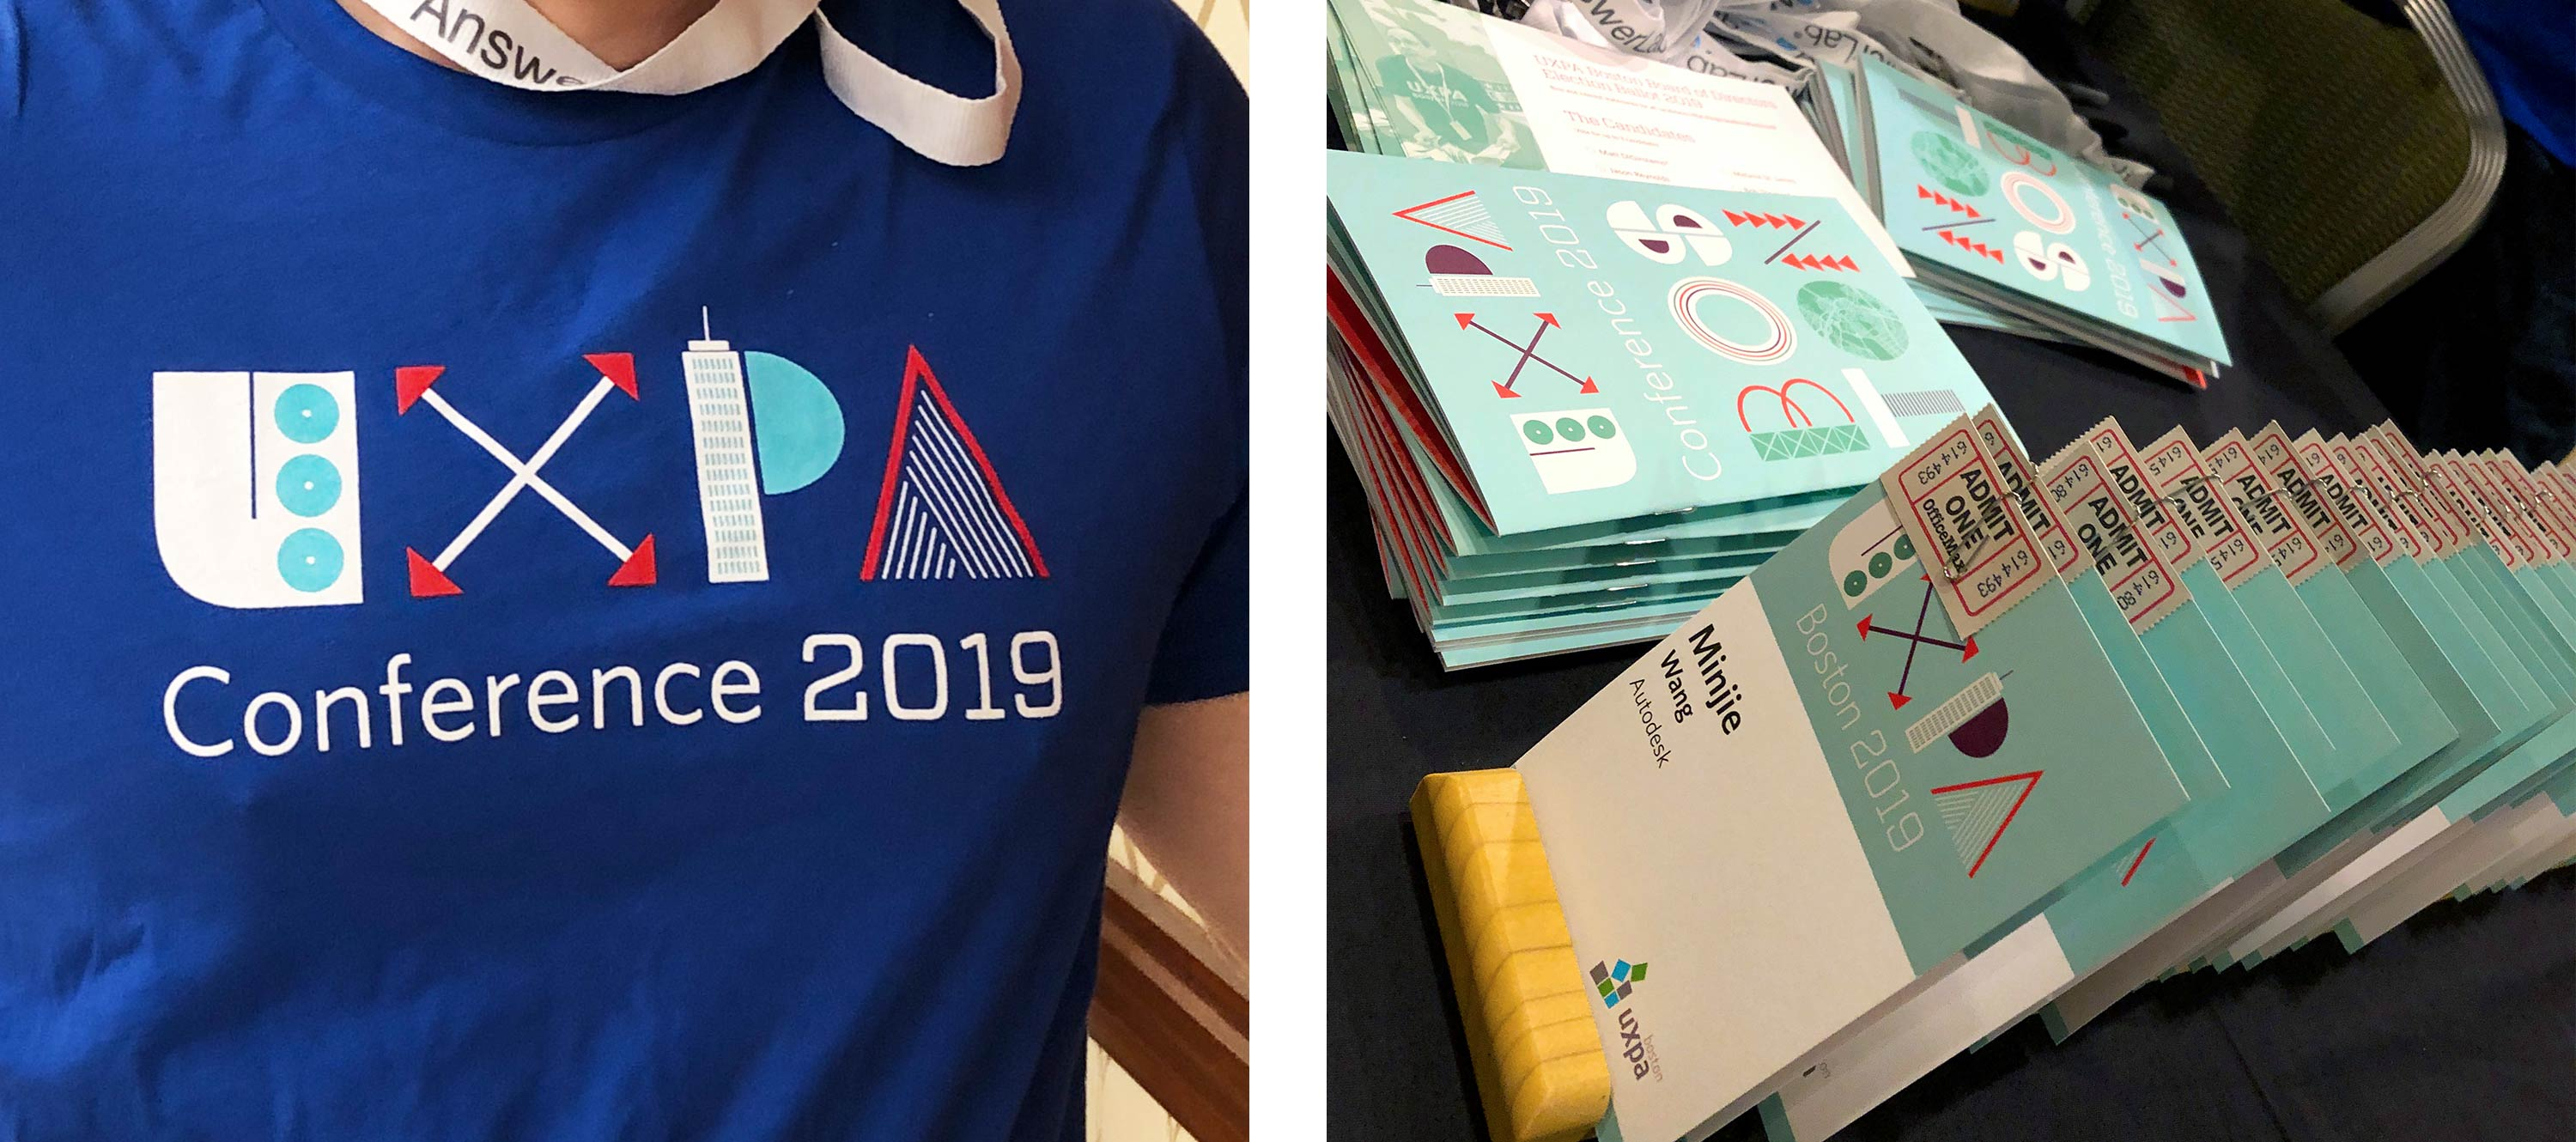 Close up images of conference t-shirts and name tags.